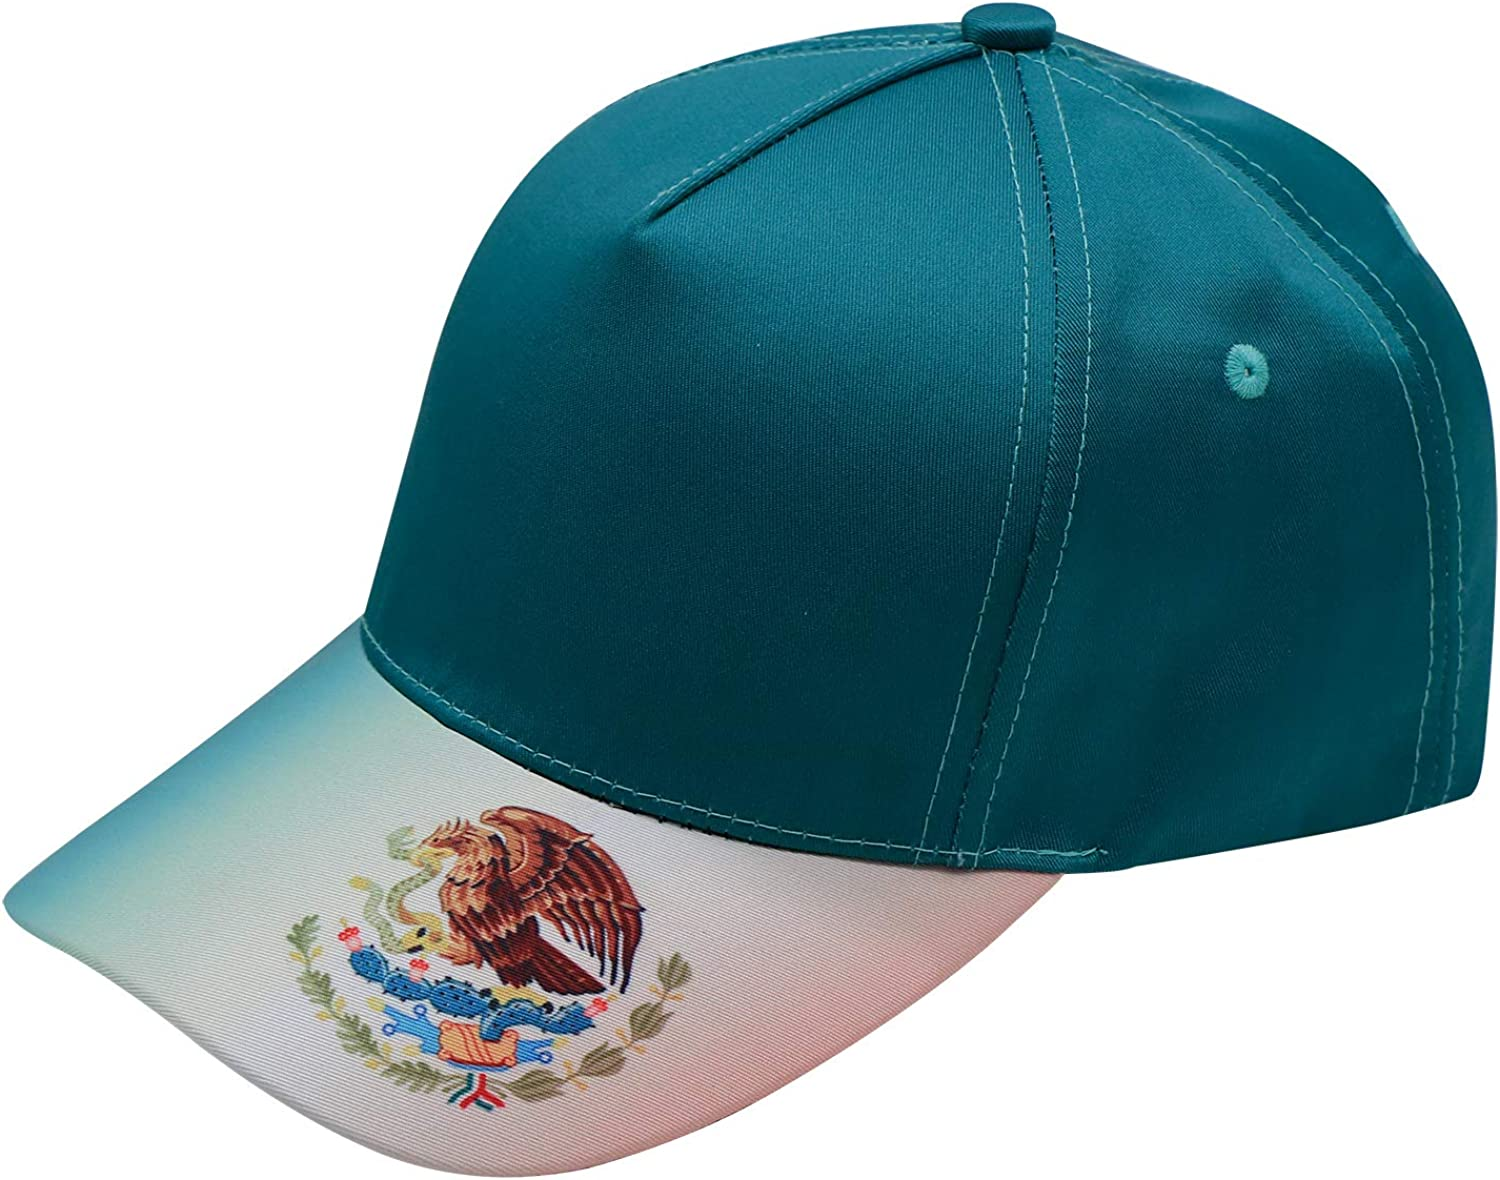 Xie Junsss Camp Upside Down Mexico Flag Baseball Cap,Adult Outdoor Dad Hat Adjustable Snapback Green